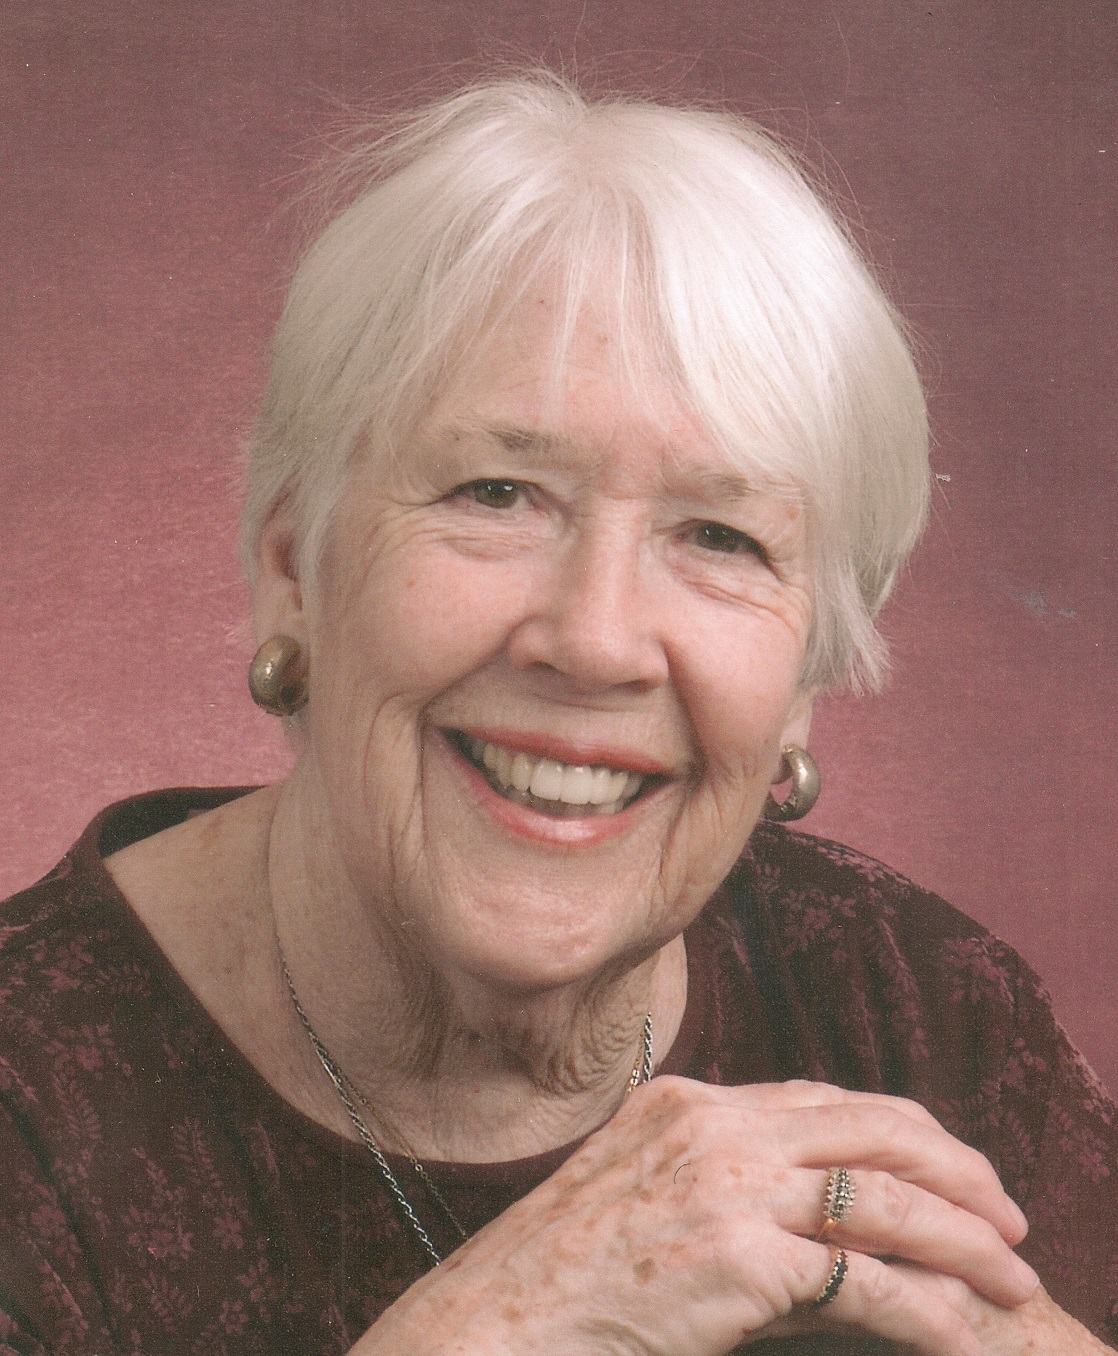 Jennie (Hopf) Wells, age 80 of Nashville, formerly of Jasper